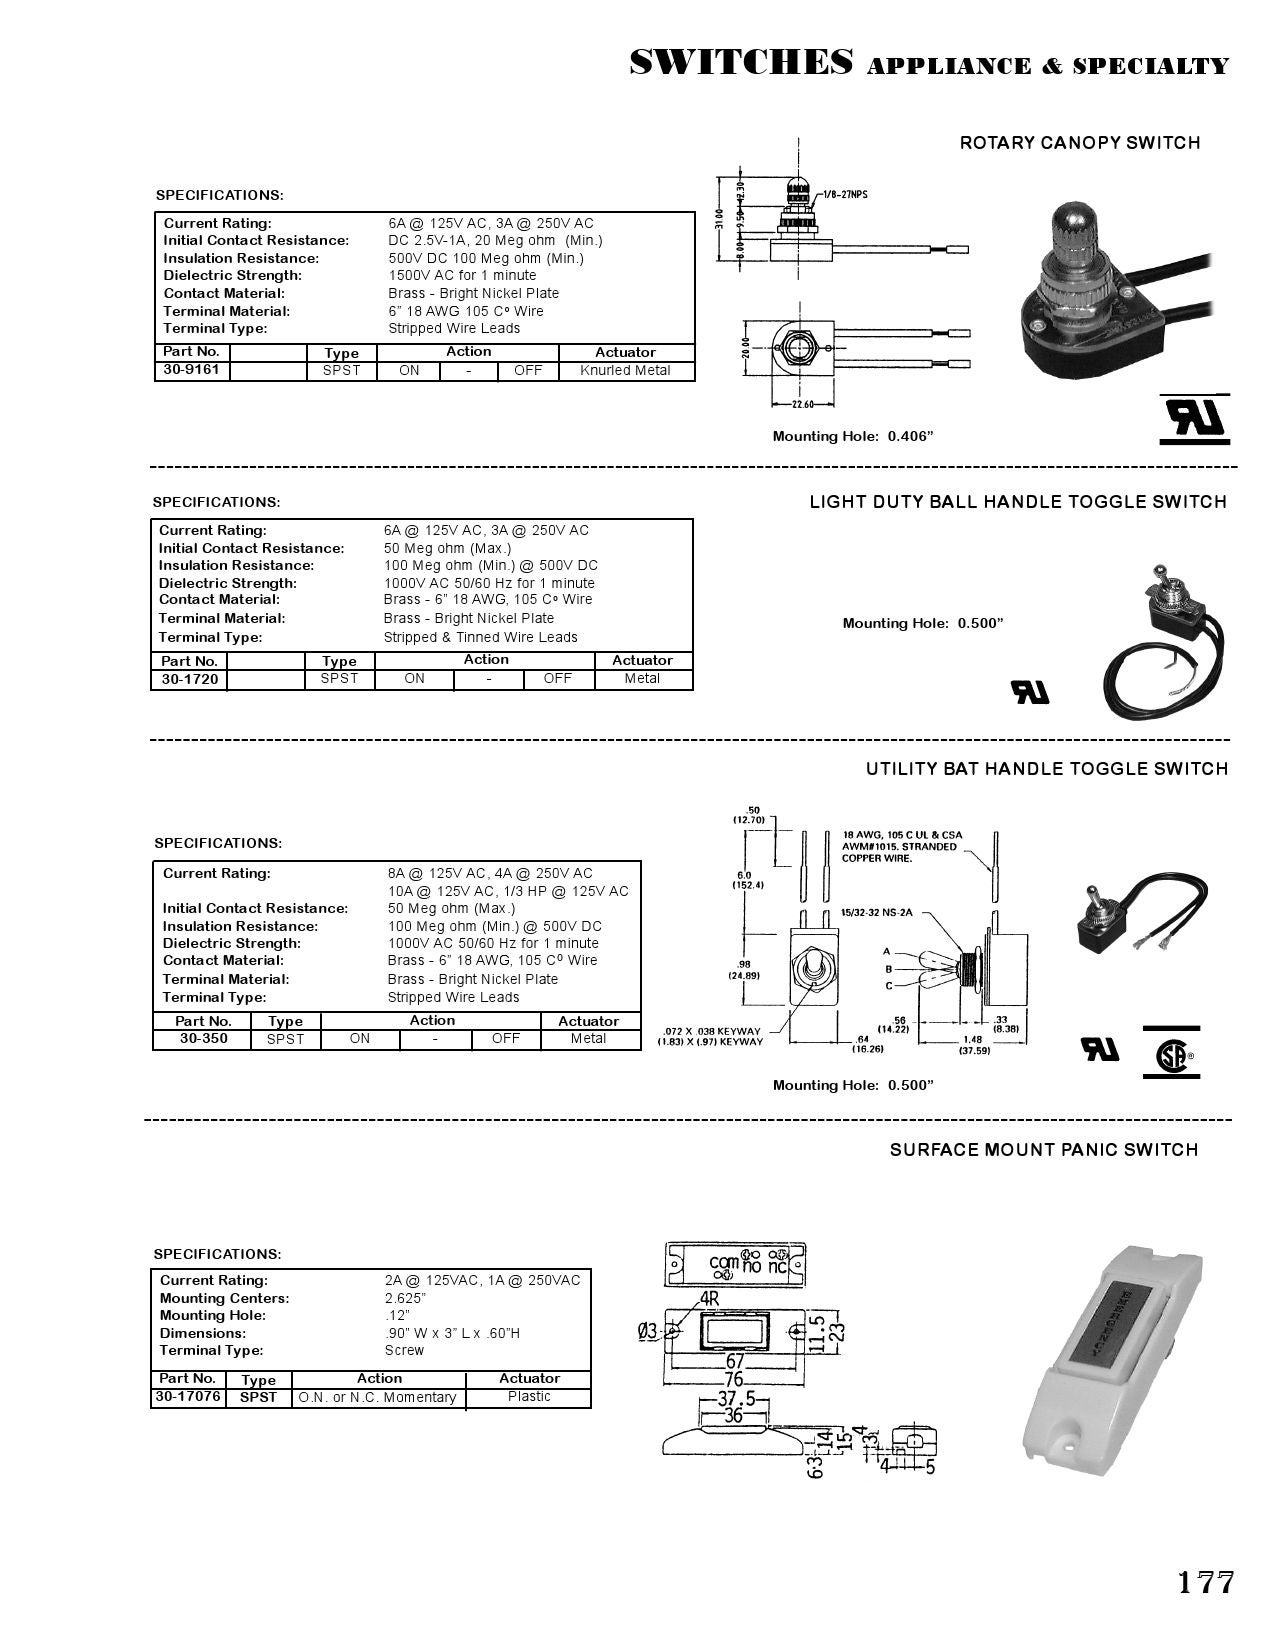 Beautiful 8 gauge wire amp rating frieze electrical diagram ideas wonderful 10 wire amp rating ideas electrical circuit diagram greentooth Images